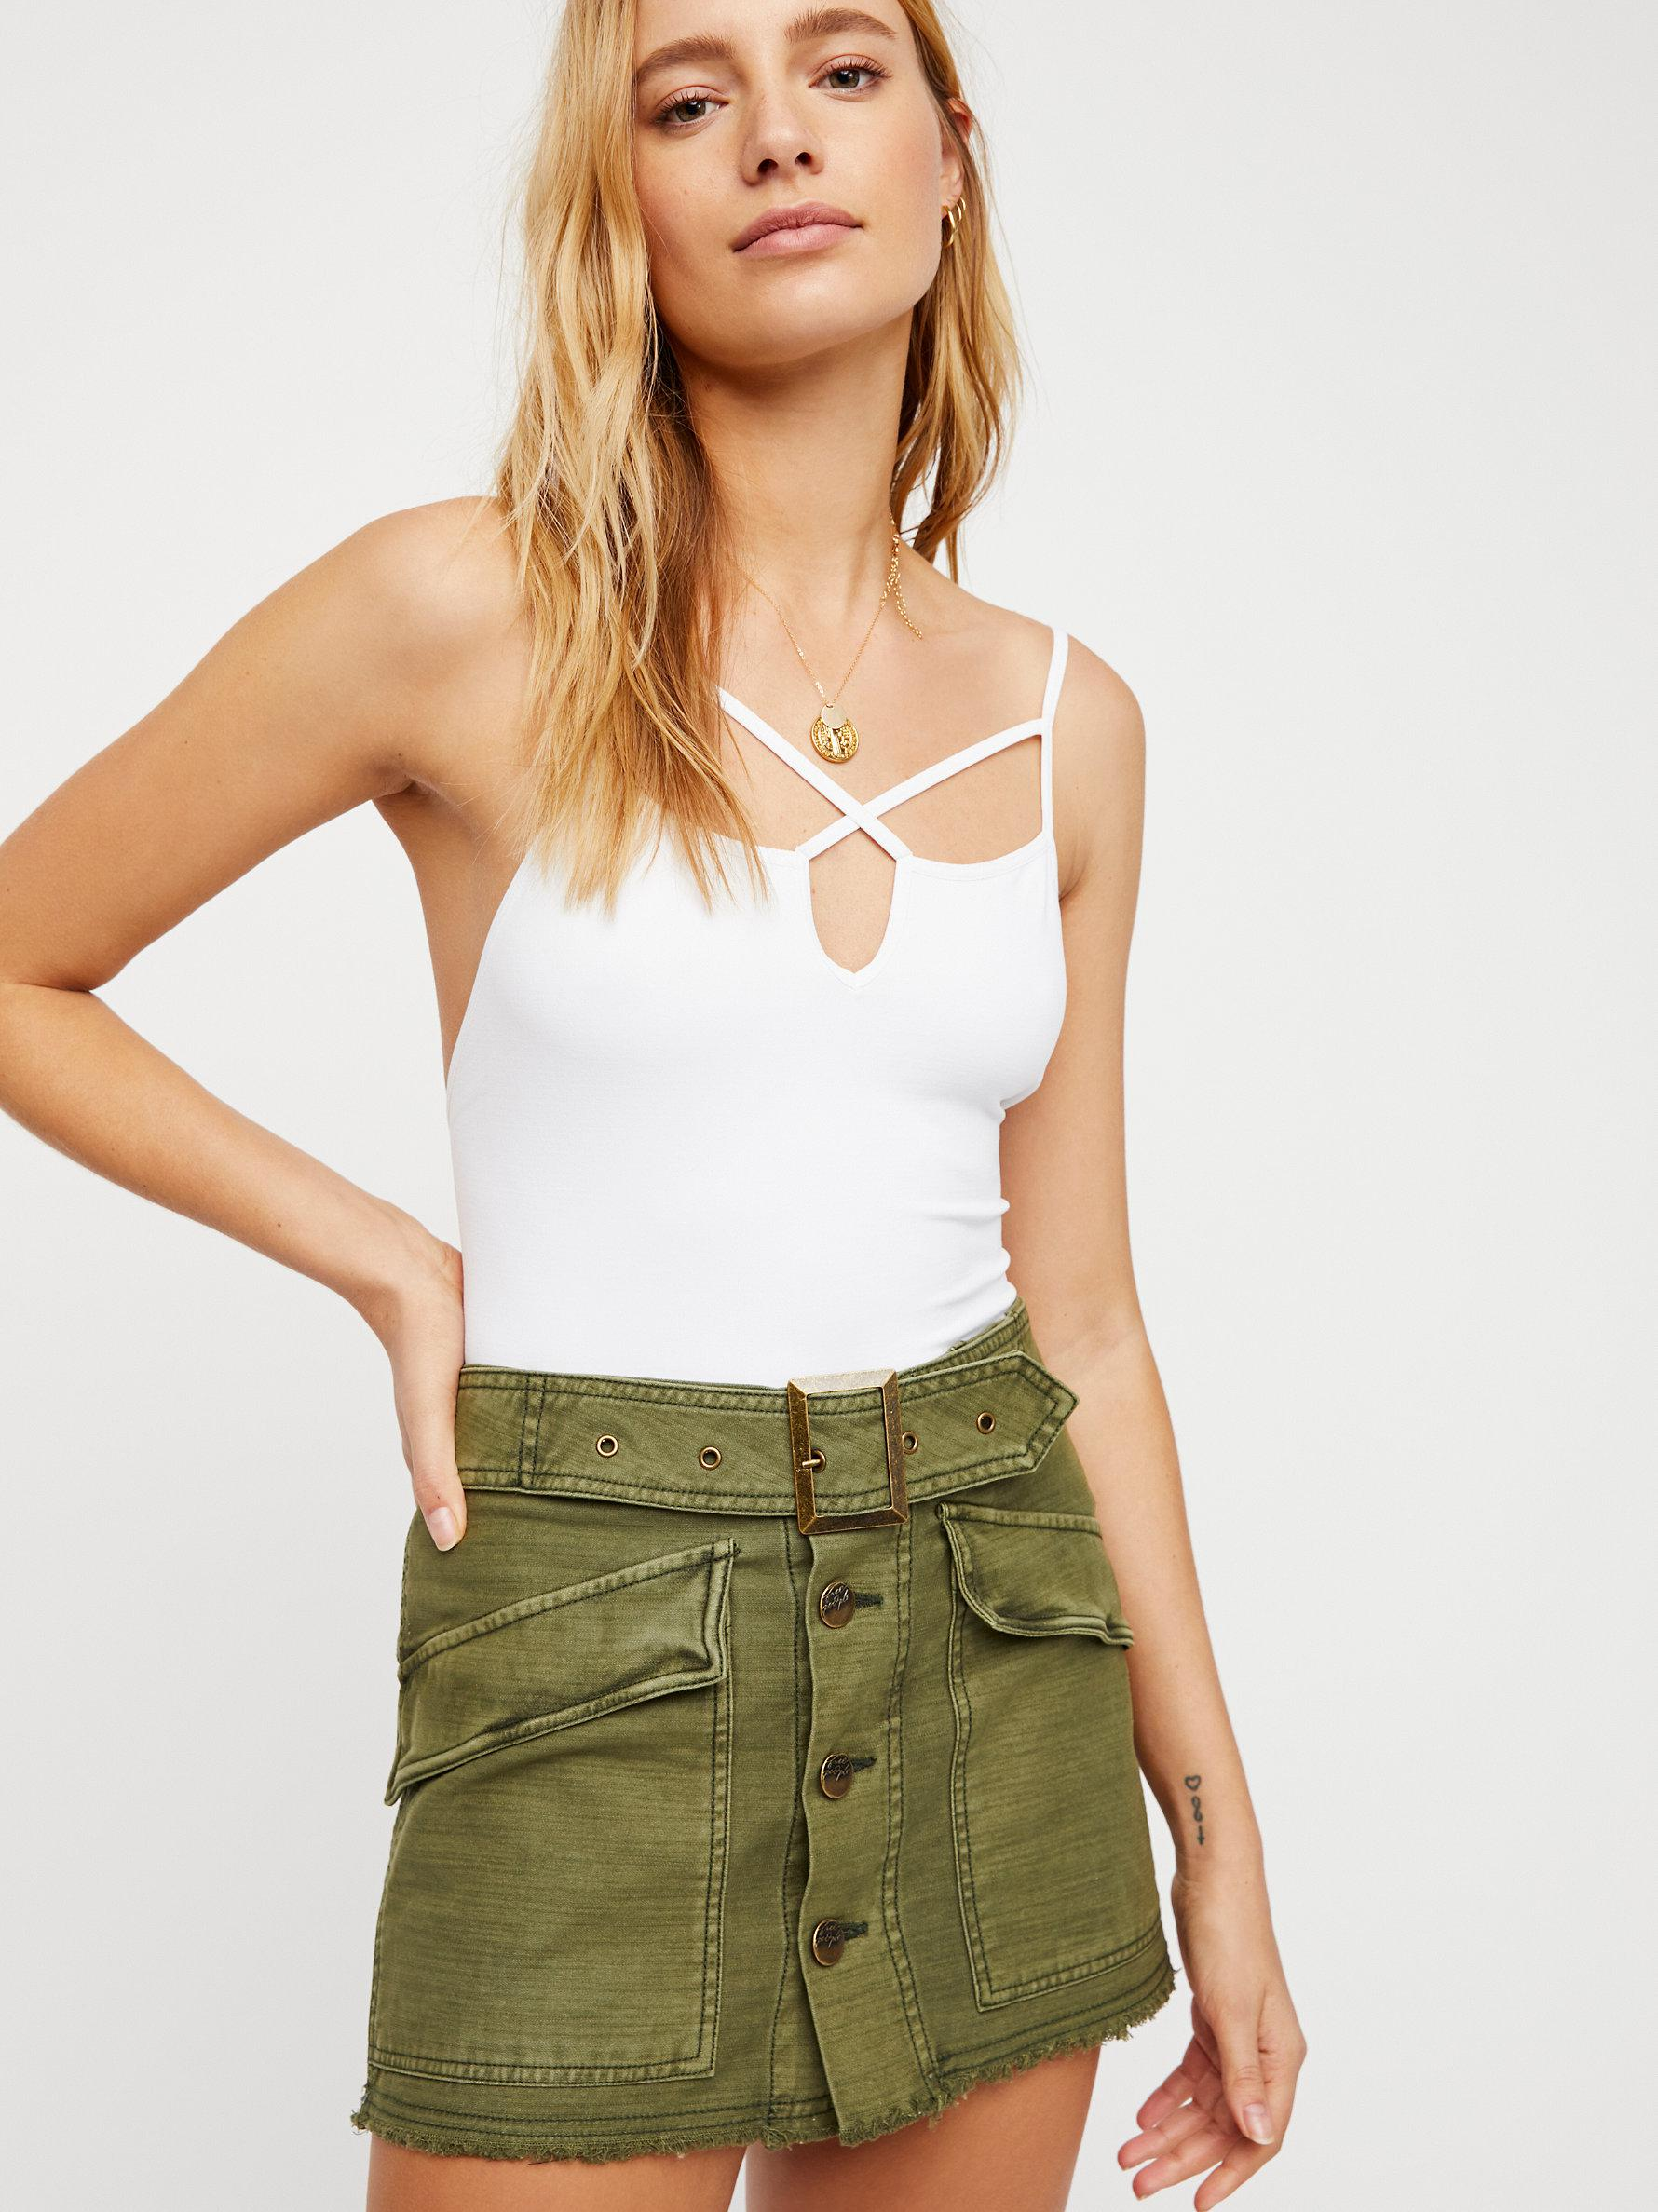 ec3e47cae1d7 Free People Hanging On Tight Mini Skirt in Green - Lyst